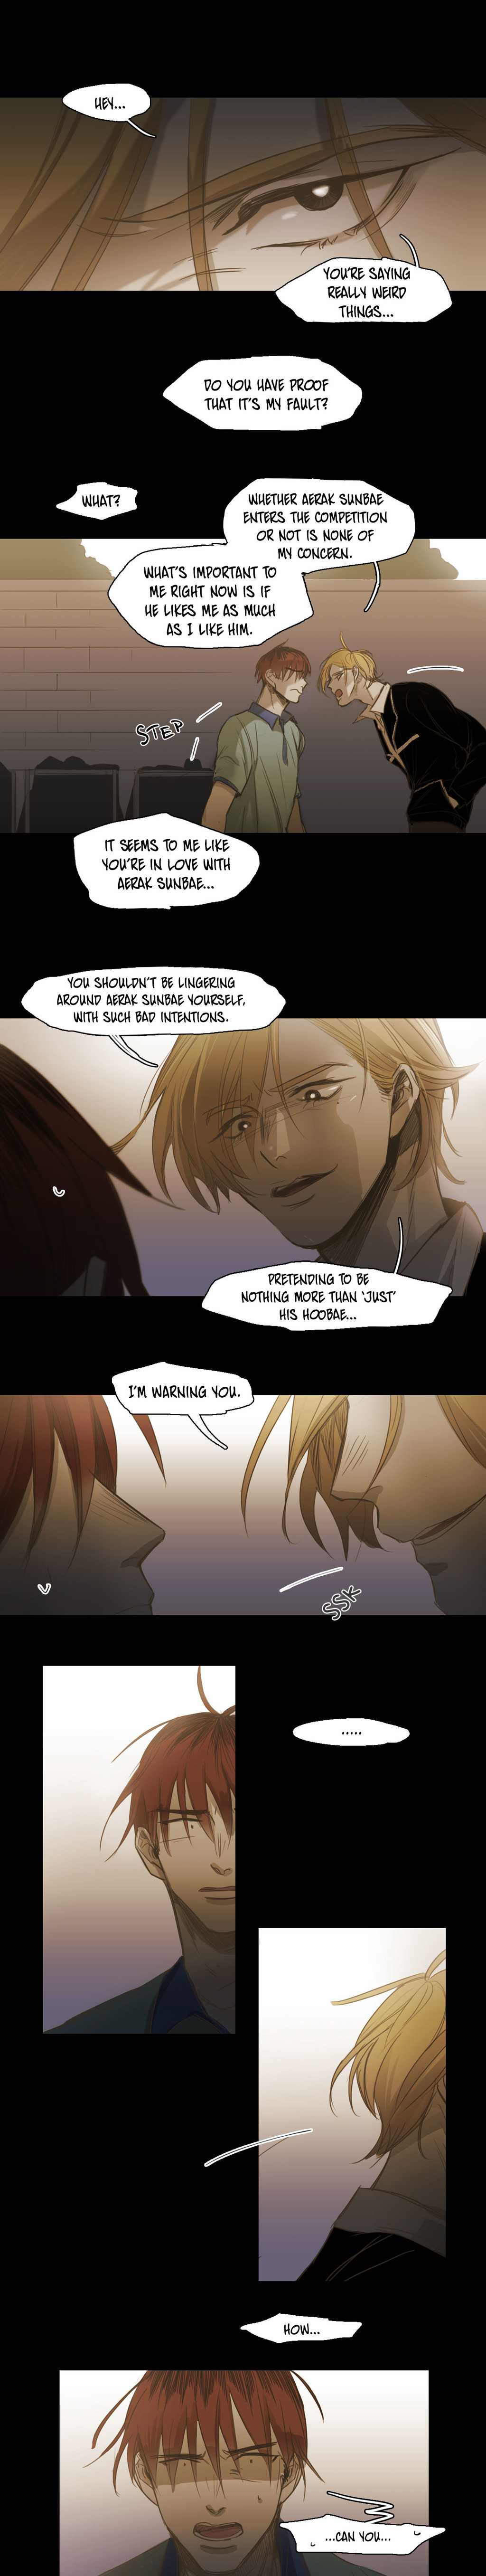 Never Understand - Chapter 59